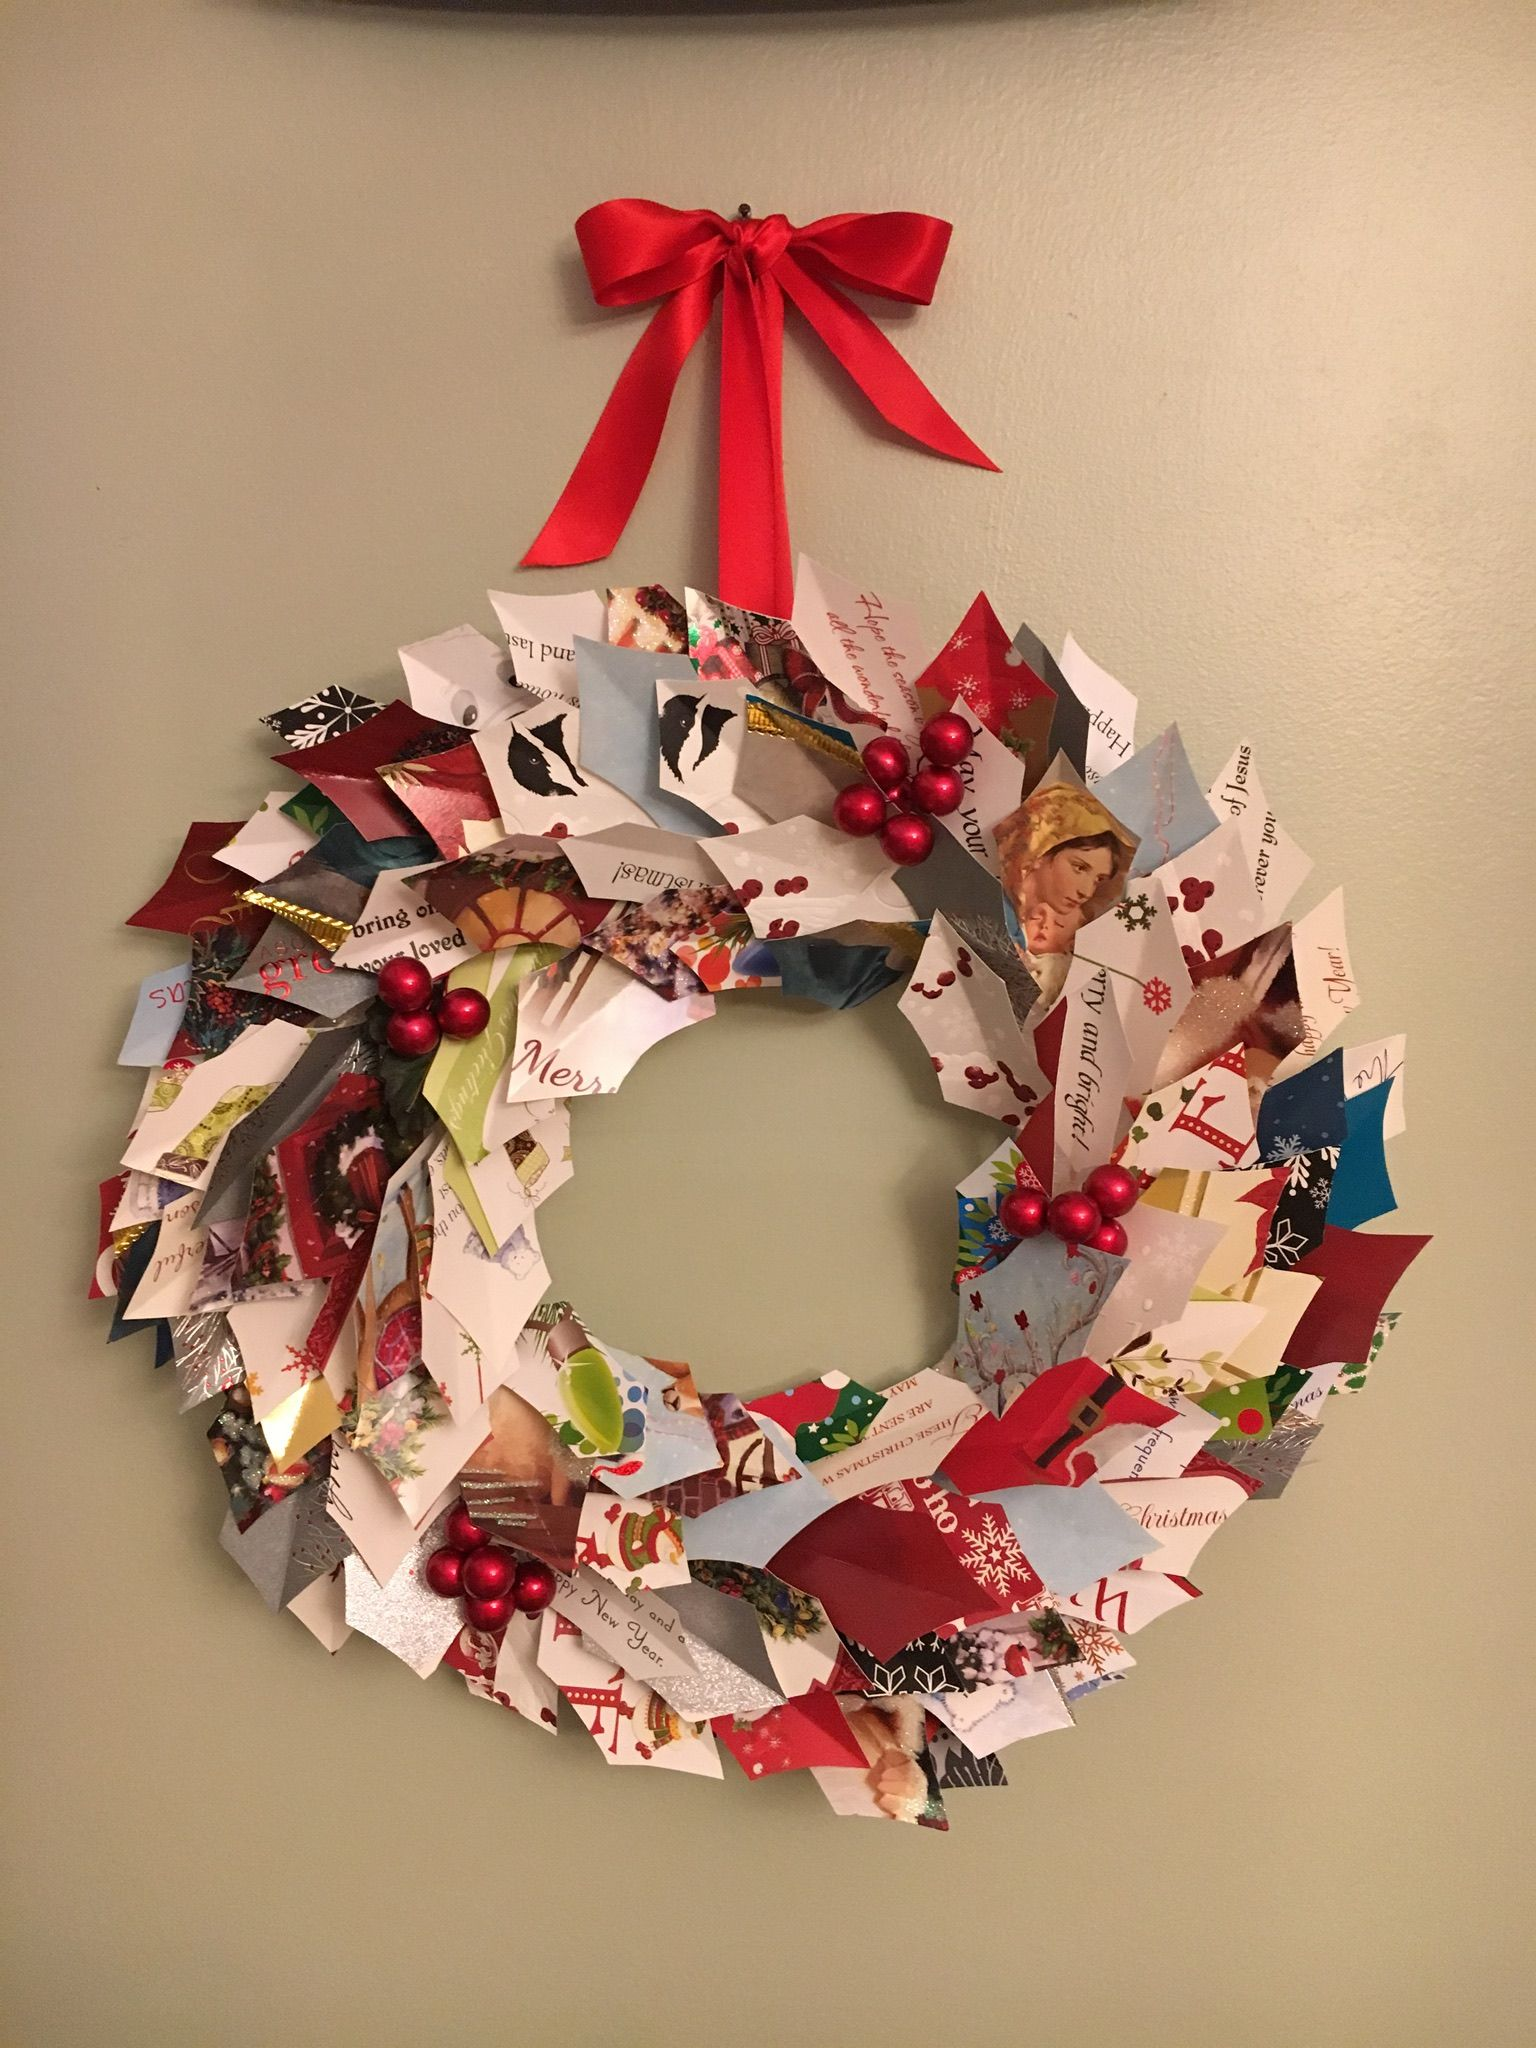 Christmas wreath from upcycled Christmas cards. Wine